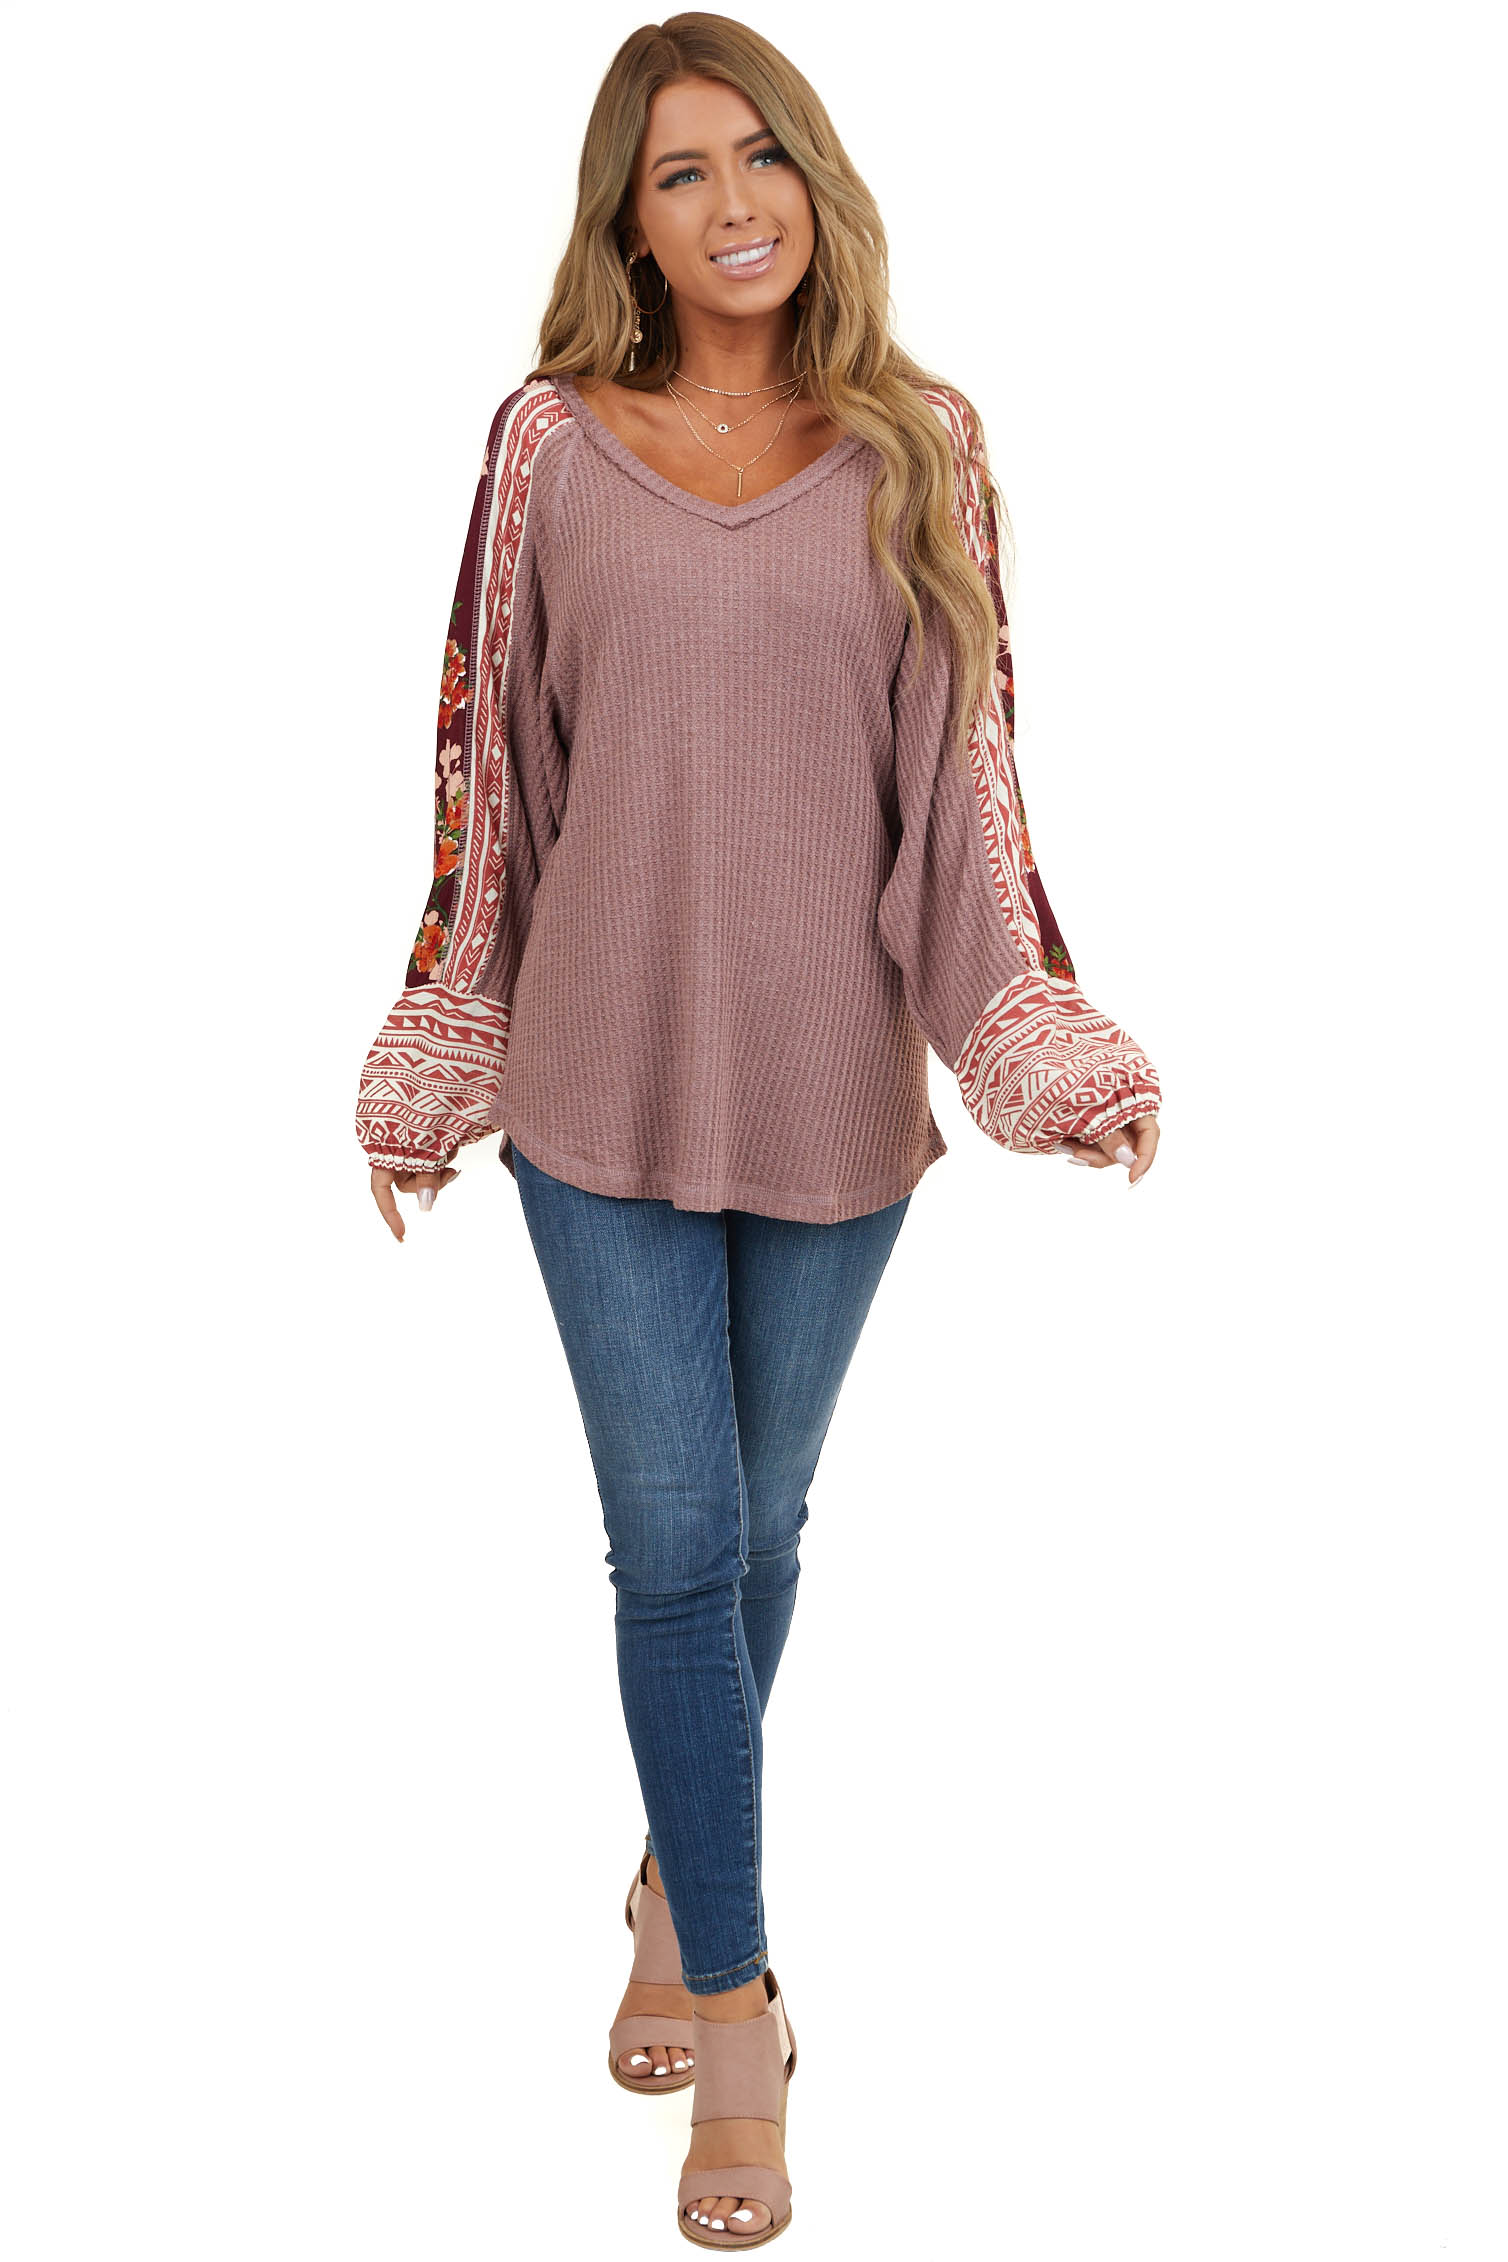 Dusty Rose Waffle Knit Top with Contrasting Long Sleeves